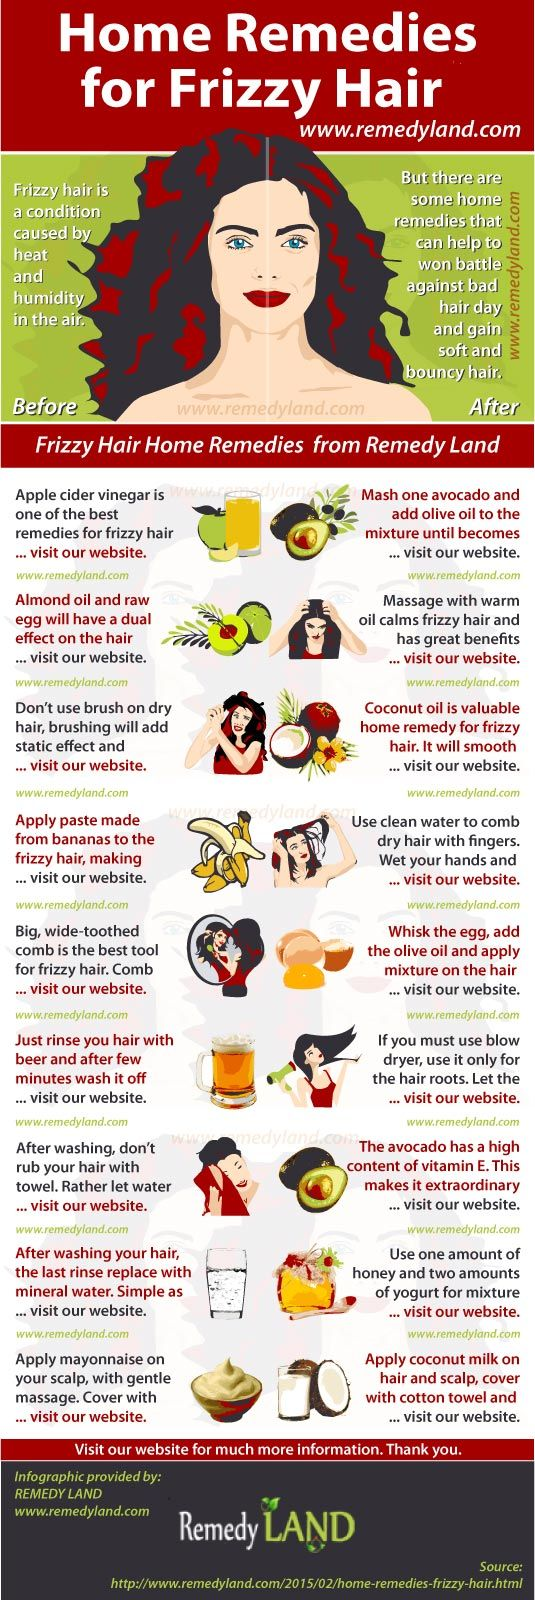 Frizzy Hair Home Remedies for Managing a Dry, Brittle, Unruly Hair - Remedy Land #FrizzyHair #haircare #homeremedies